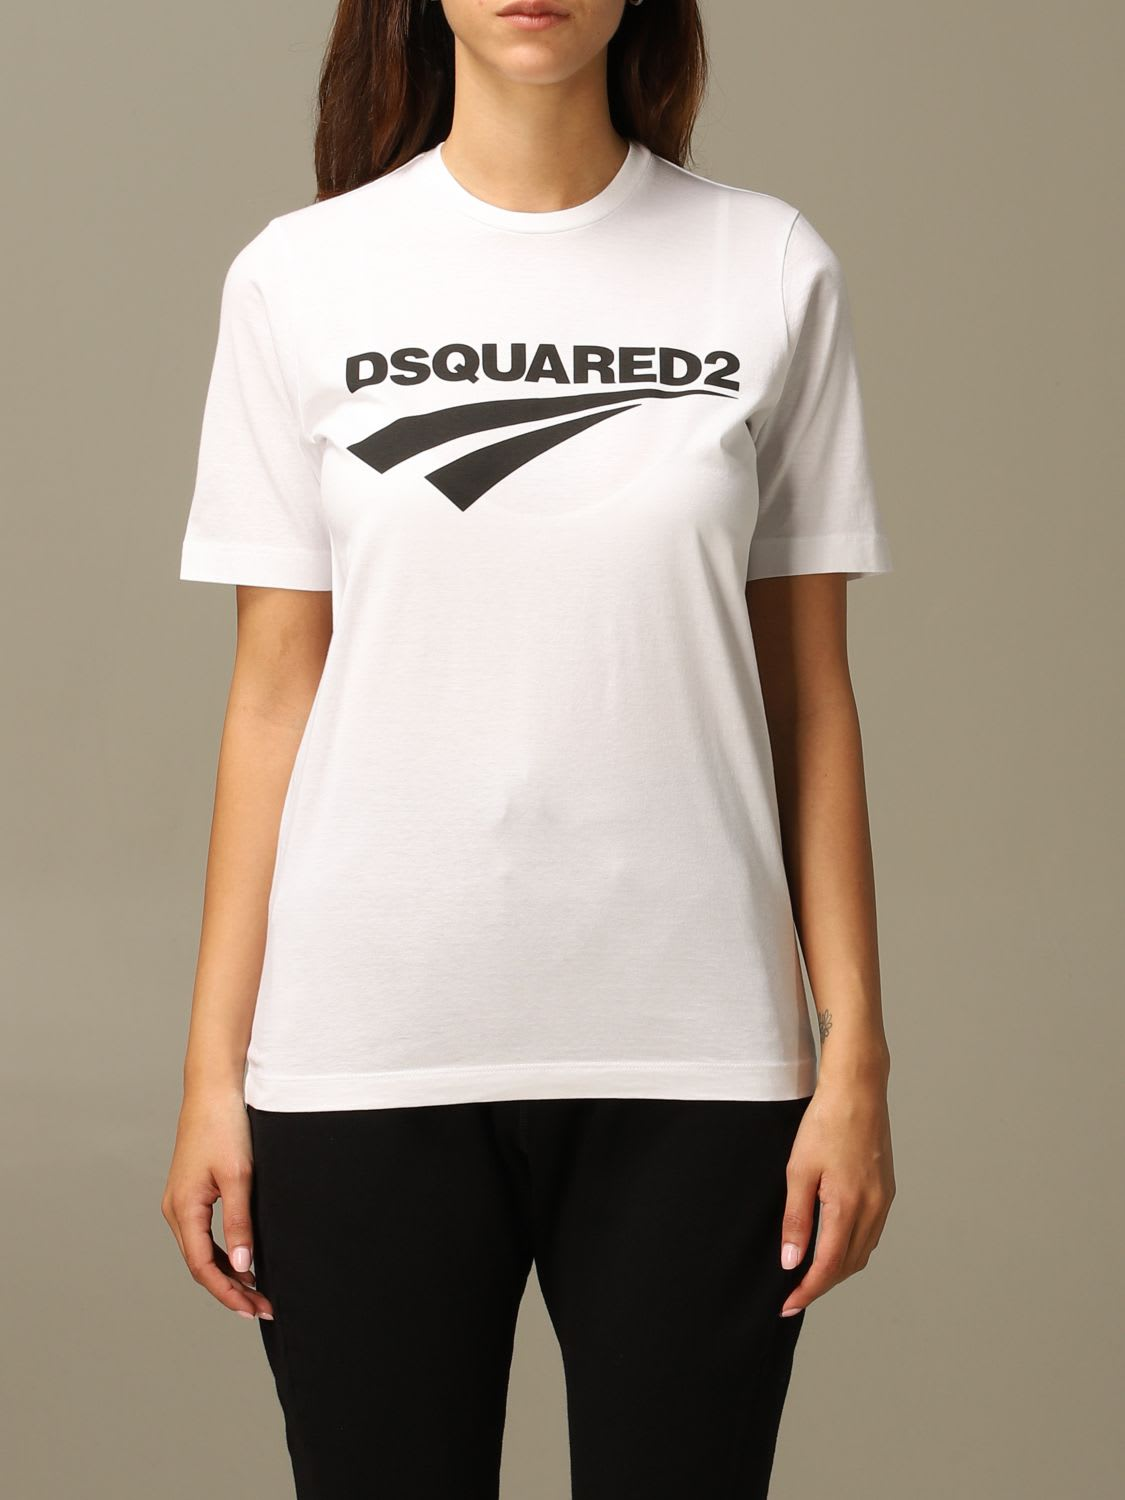 Dsquared2 T-shirt Dsquared2 Crew Neck T-shirt With Logo Print